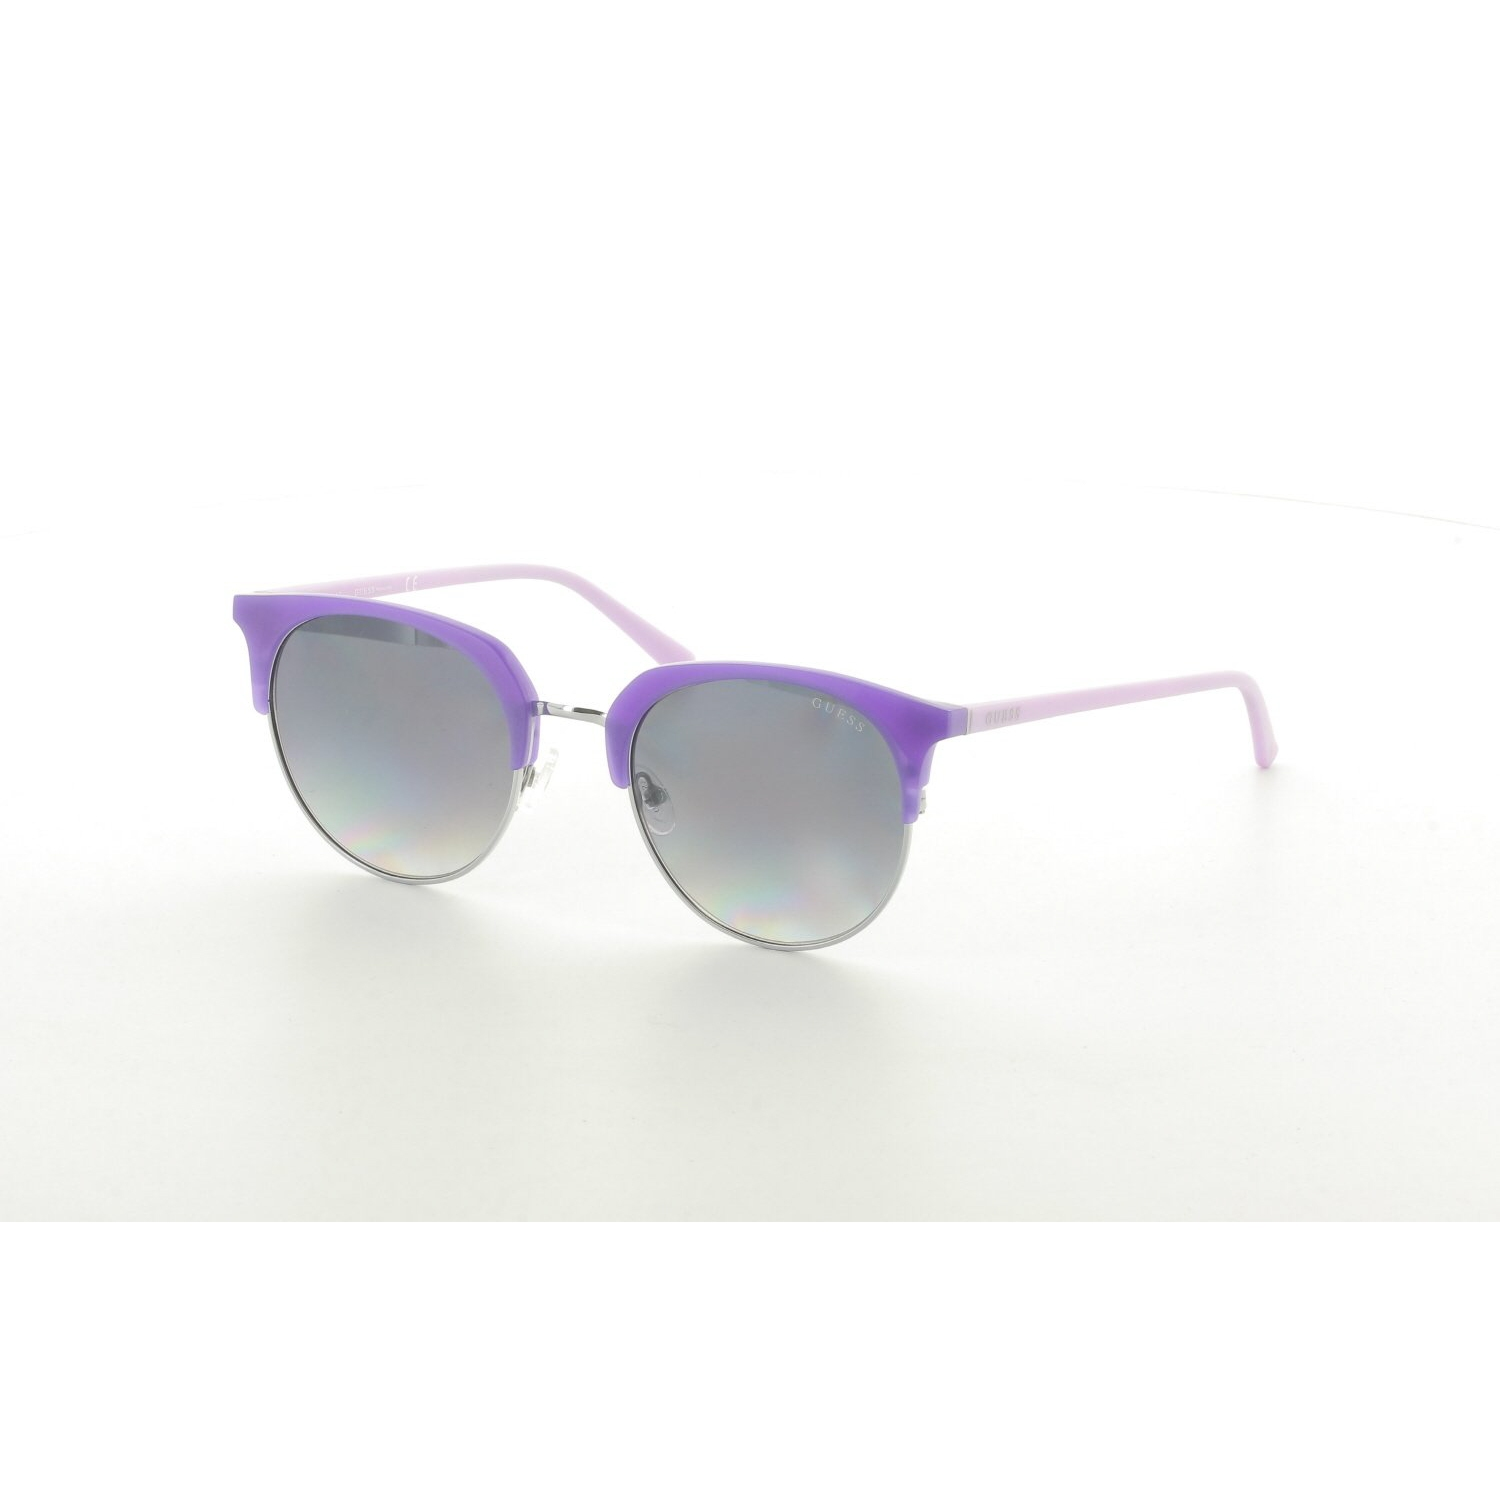 Women's sunglasses gu 3026 82b clubmaster purple organic oval aval 52-22-140 guess